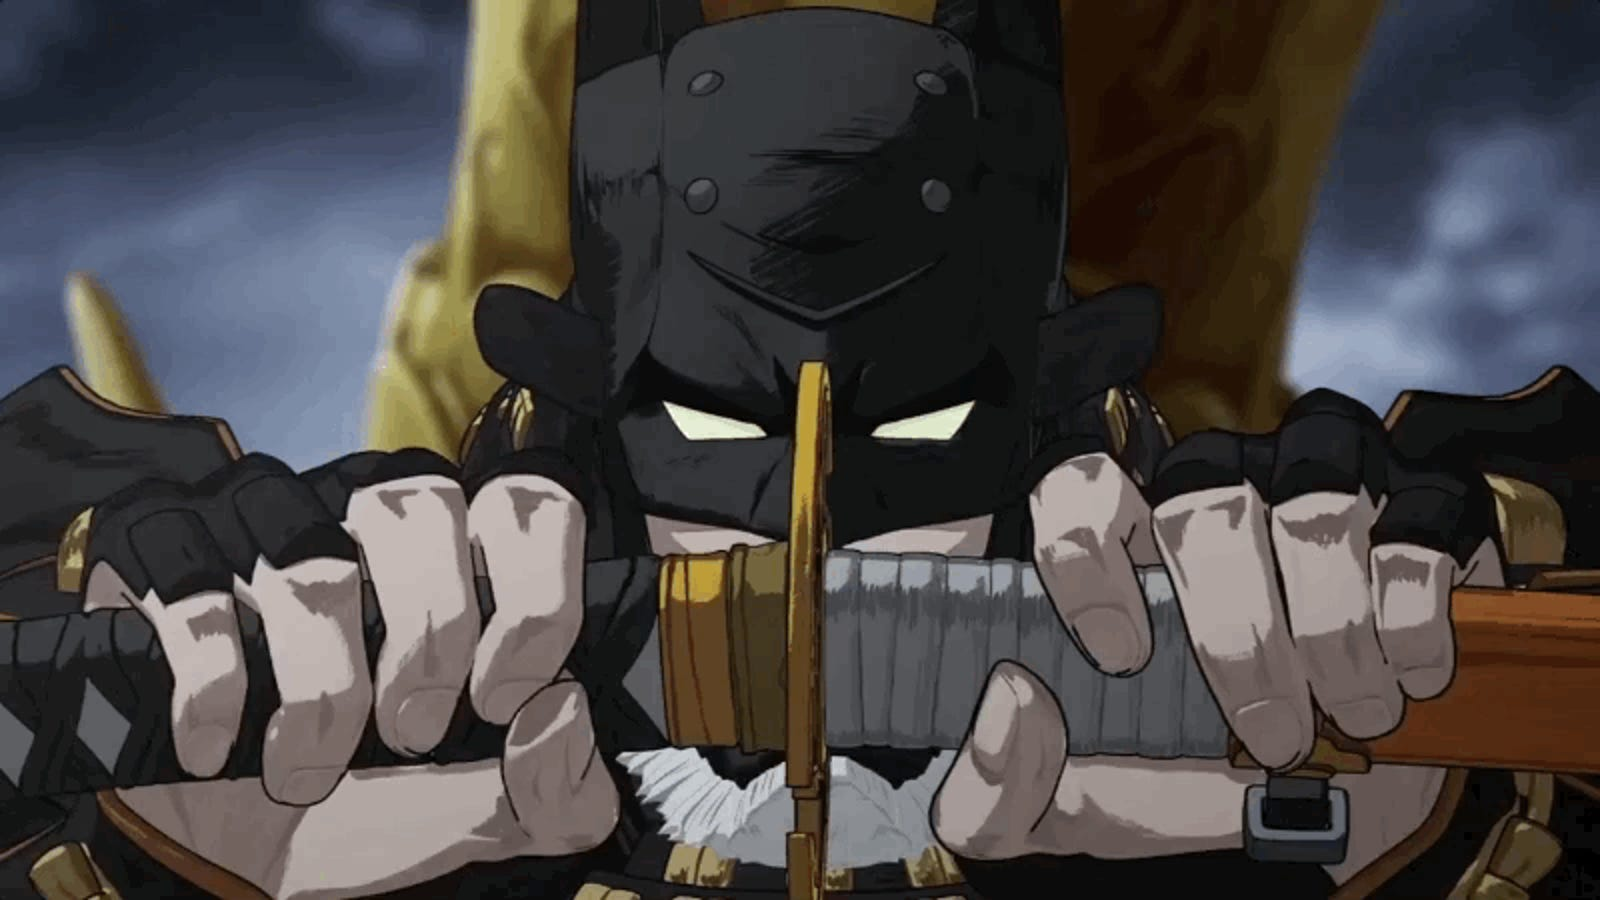 The First Trailer For the Batman Ninja Anime Is a Gloriously Brutal Work of Art